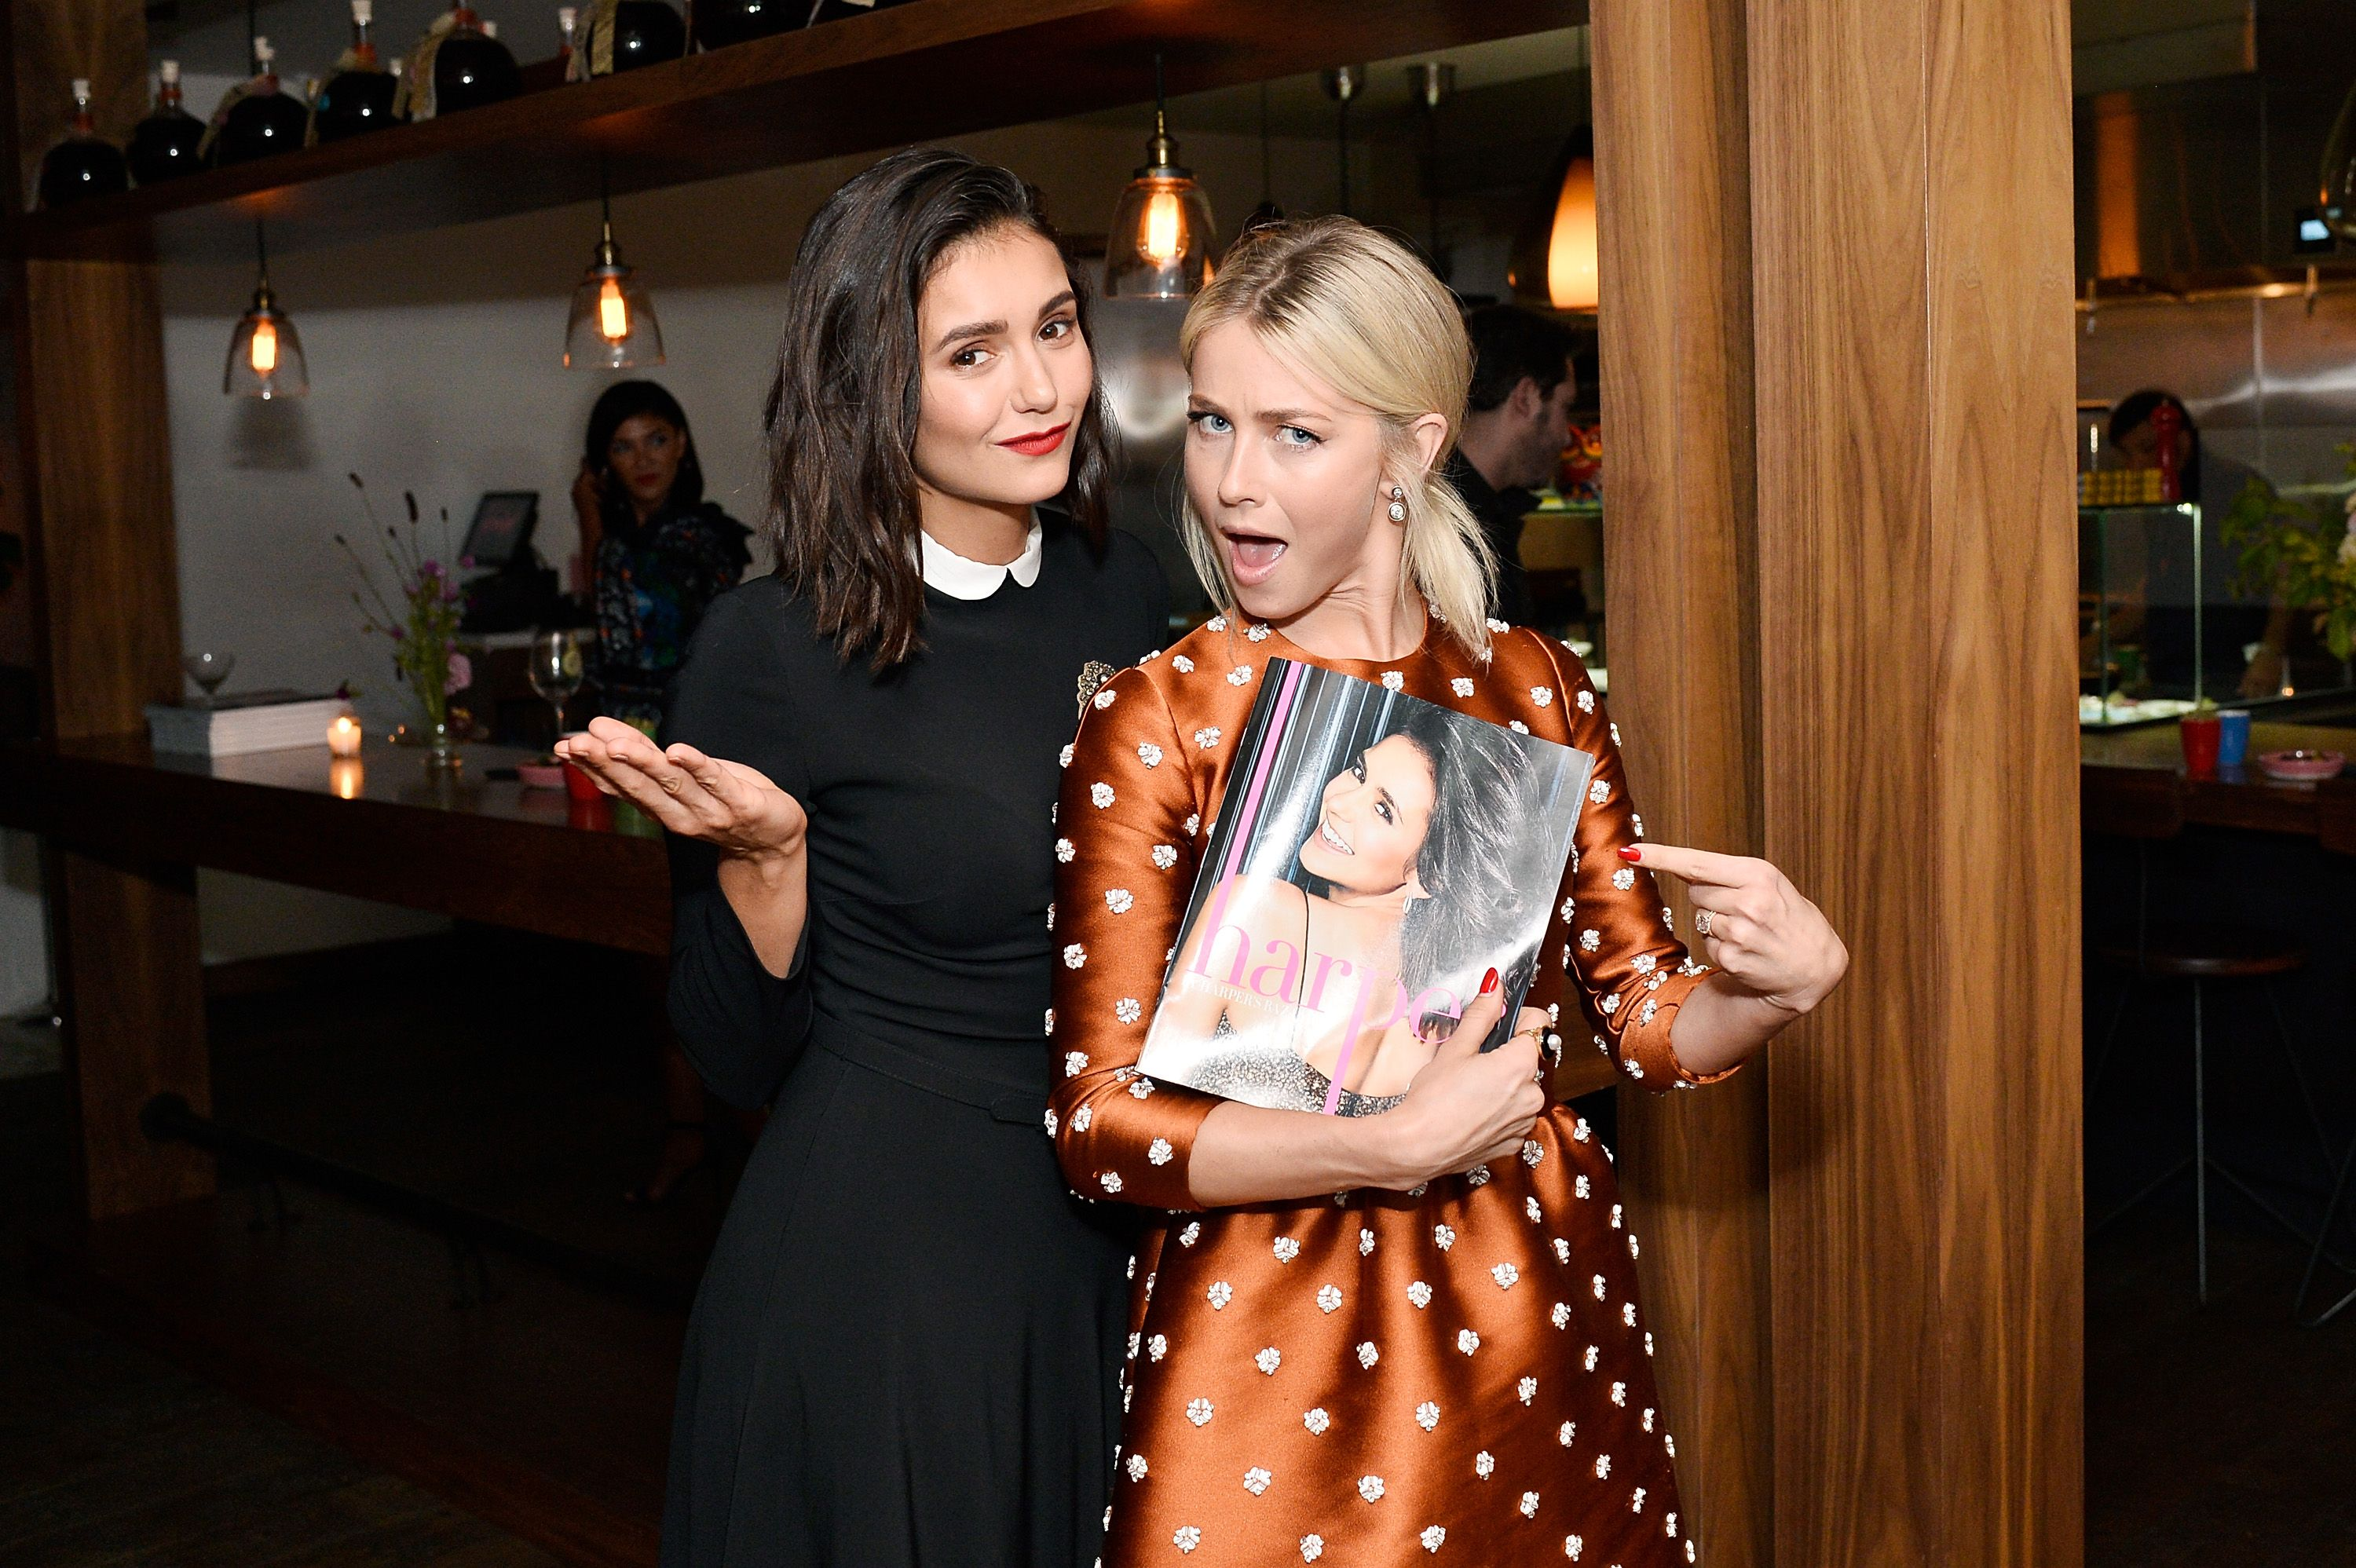 Nina Dobrev Ended Up In The Hospital And Bff Julianne Hough Took A Bunch Of Selfies